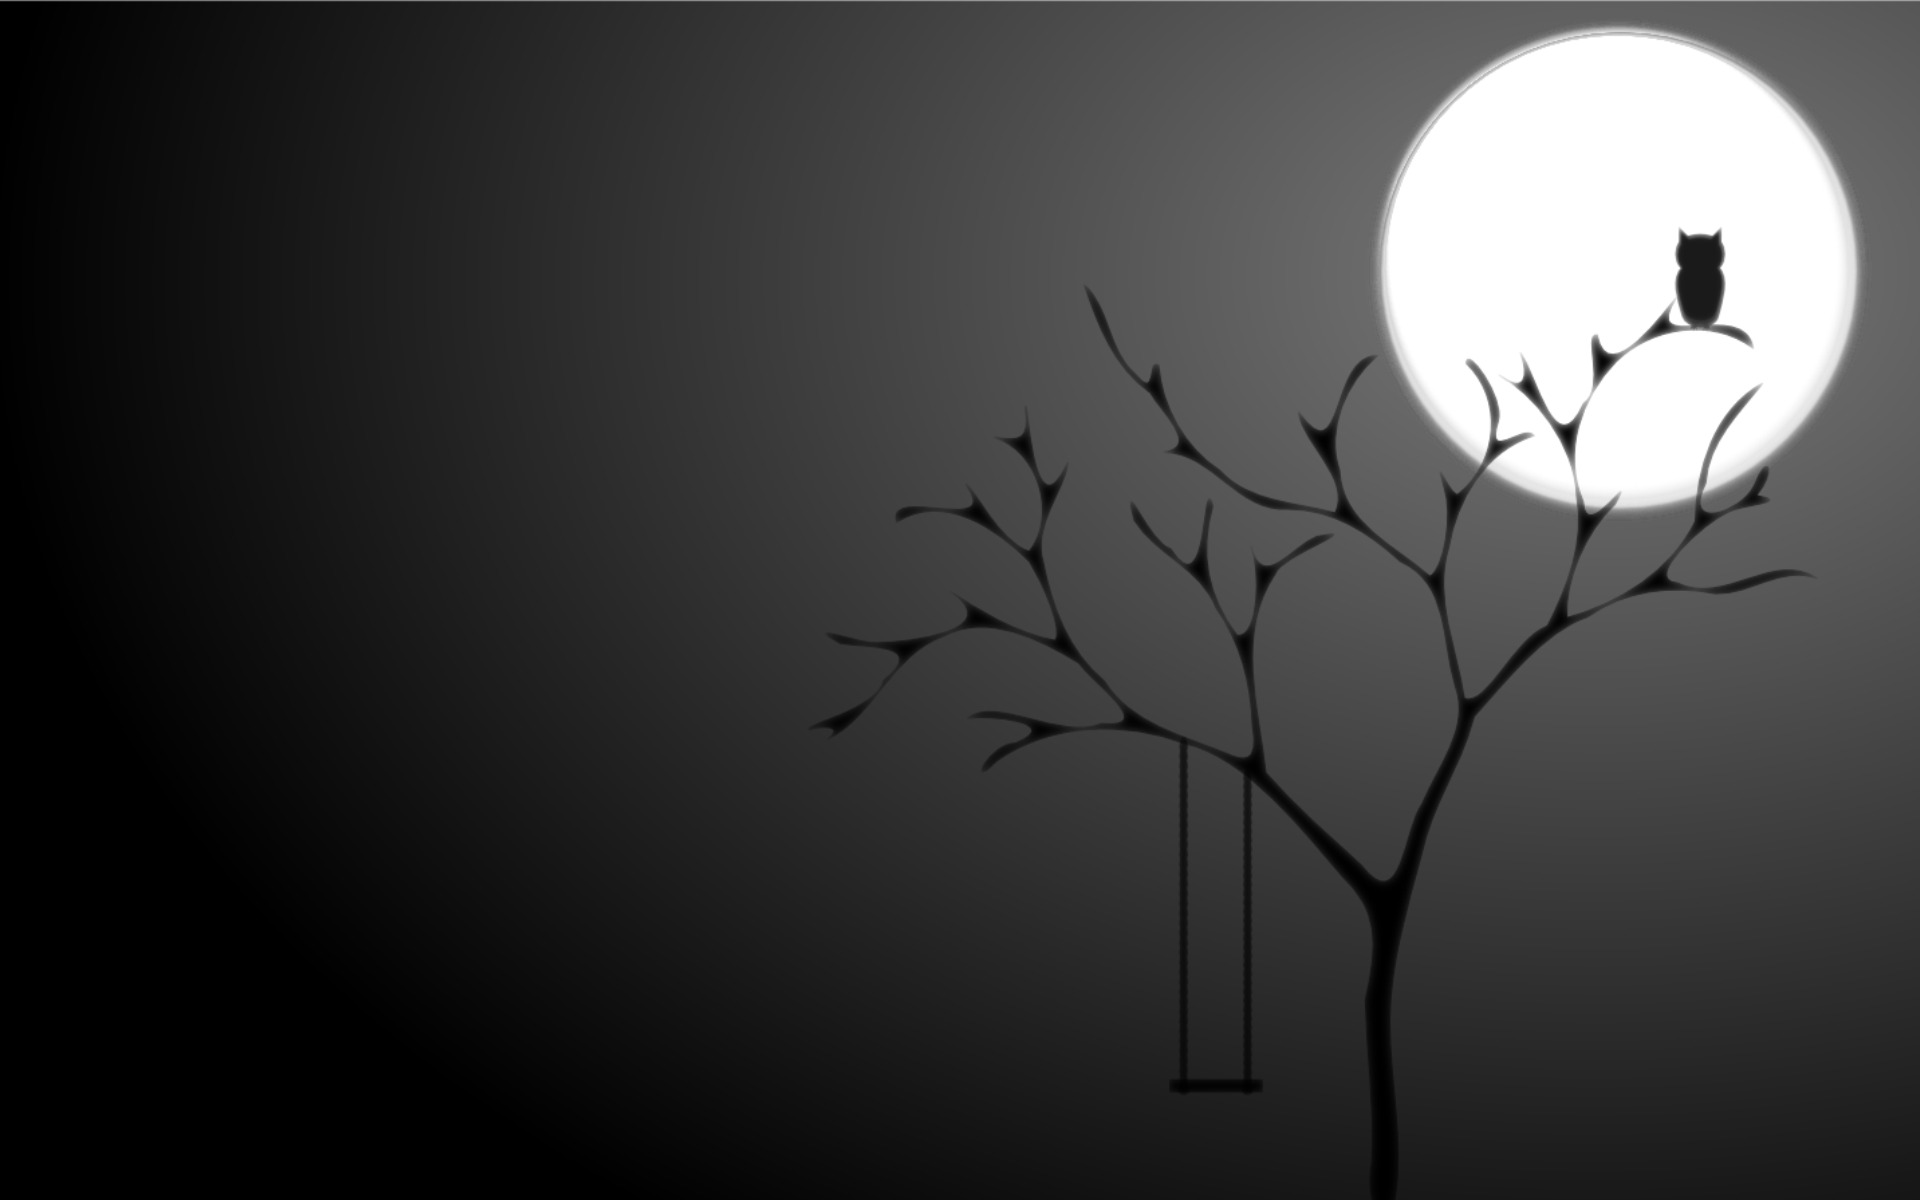 Simple Wallpaper Night Black And White - black-and-white-moon-images-7-wide-wallpaper  Snapshot.jpg